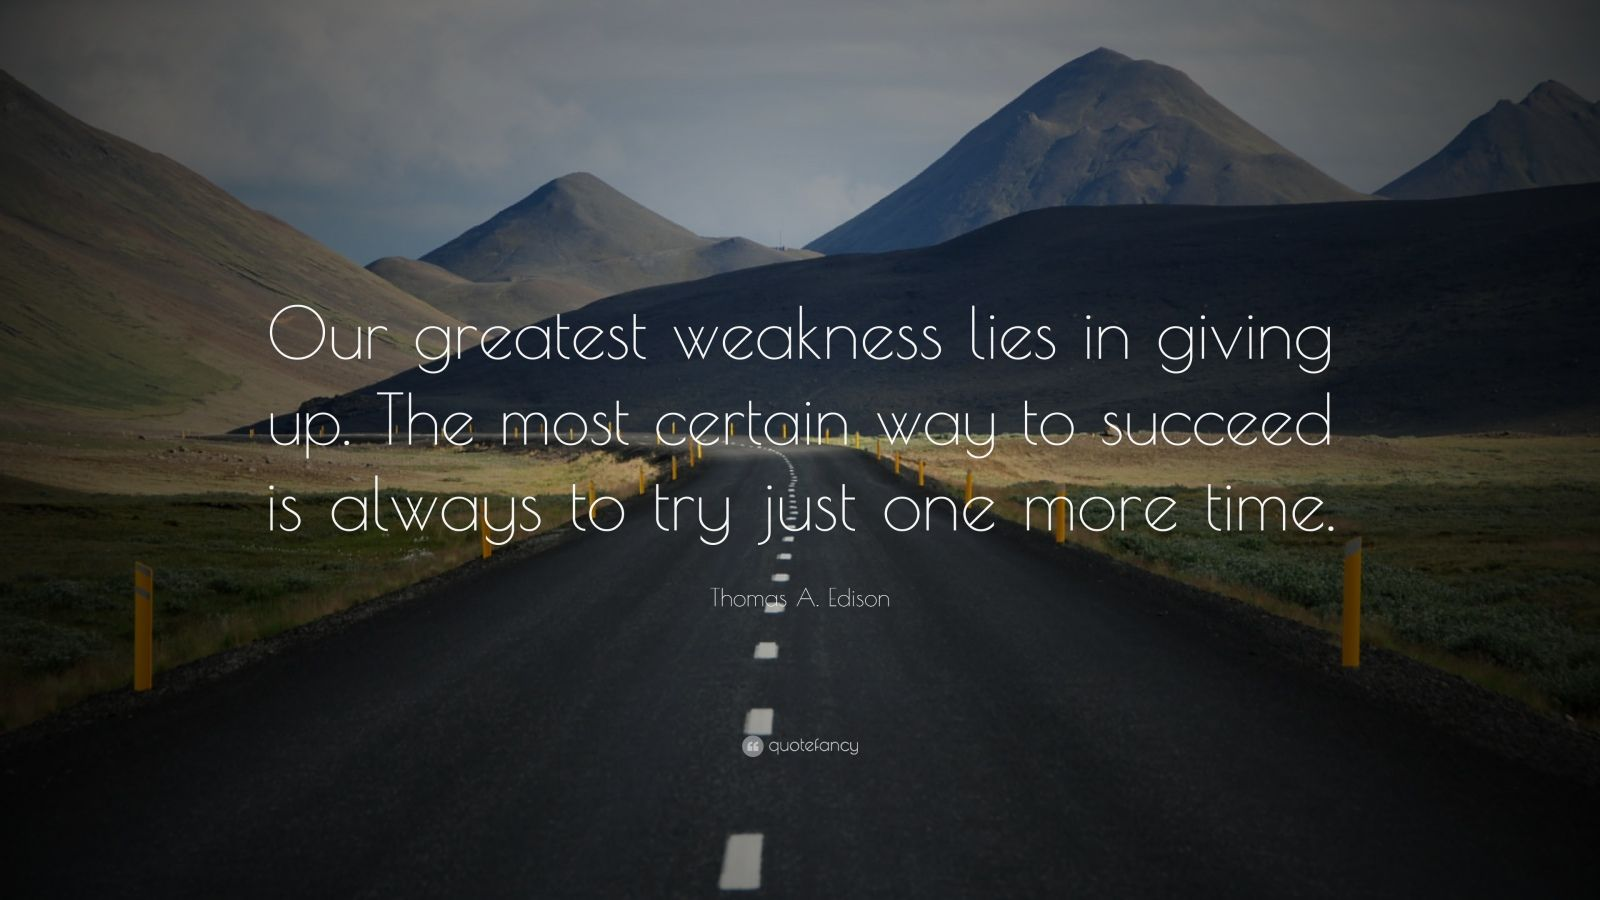 Success Quotes Hd Wallpapers 1080p Persistence Quotes 30 Wallpapers Quotefancy